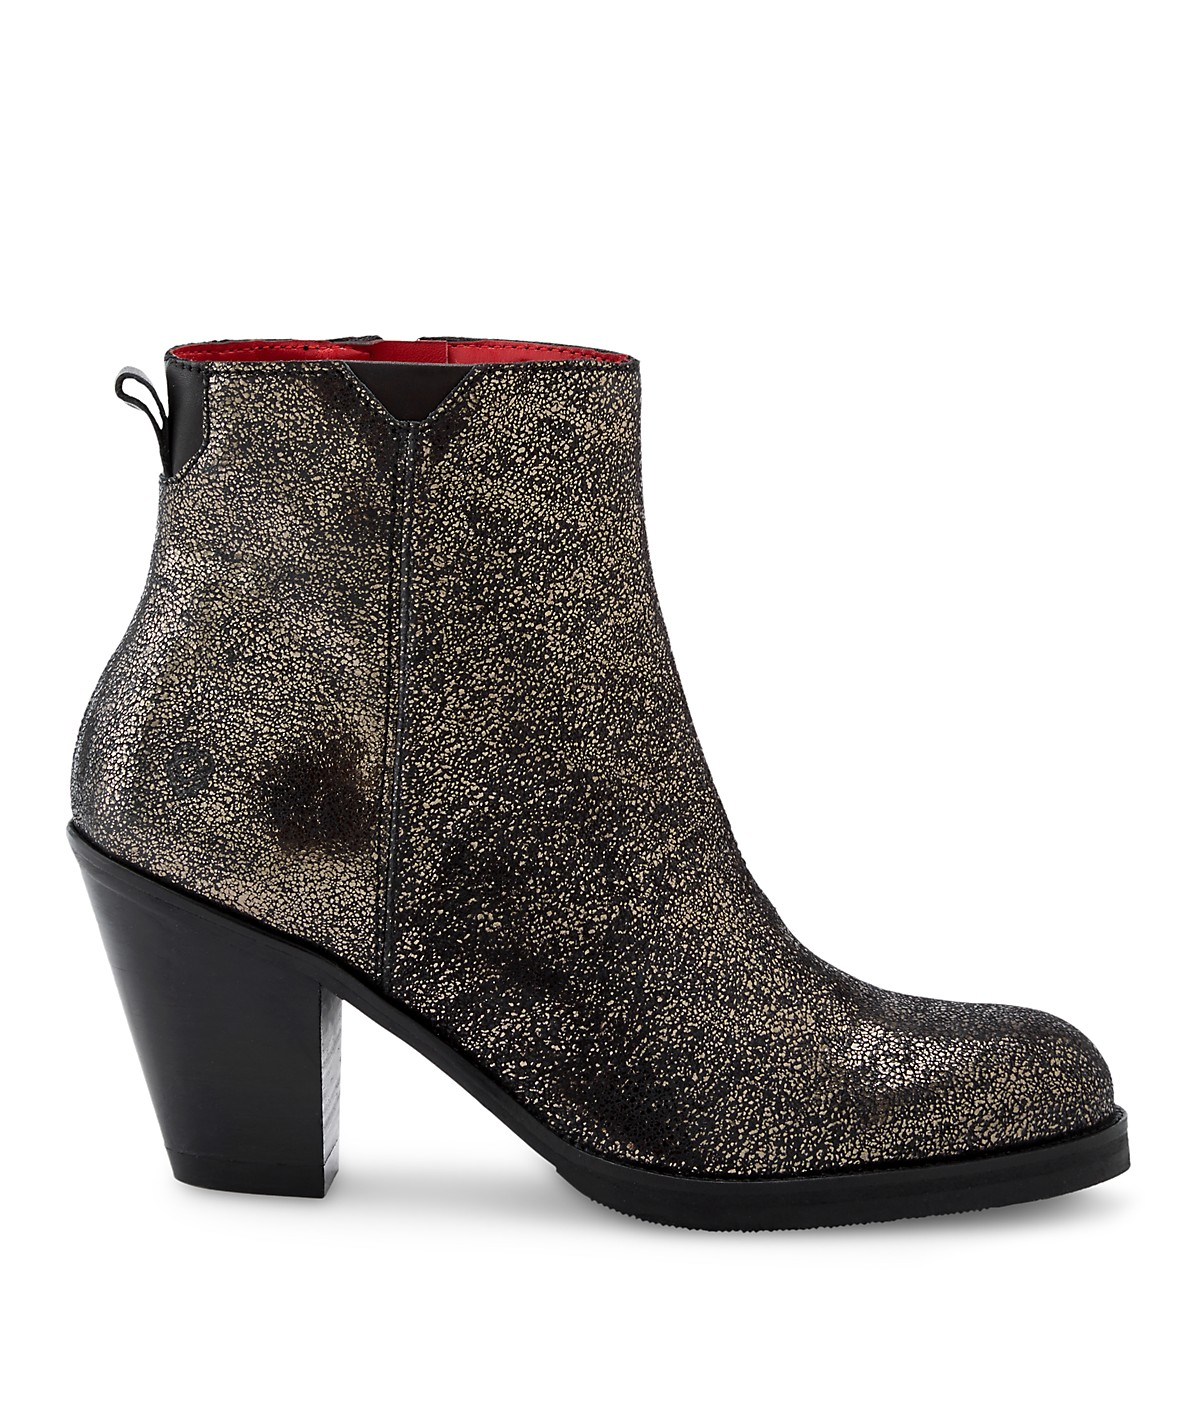 Ankle boots LS0121 from liebeskind